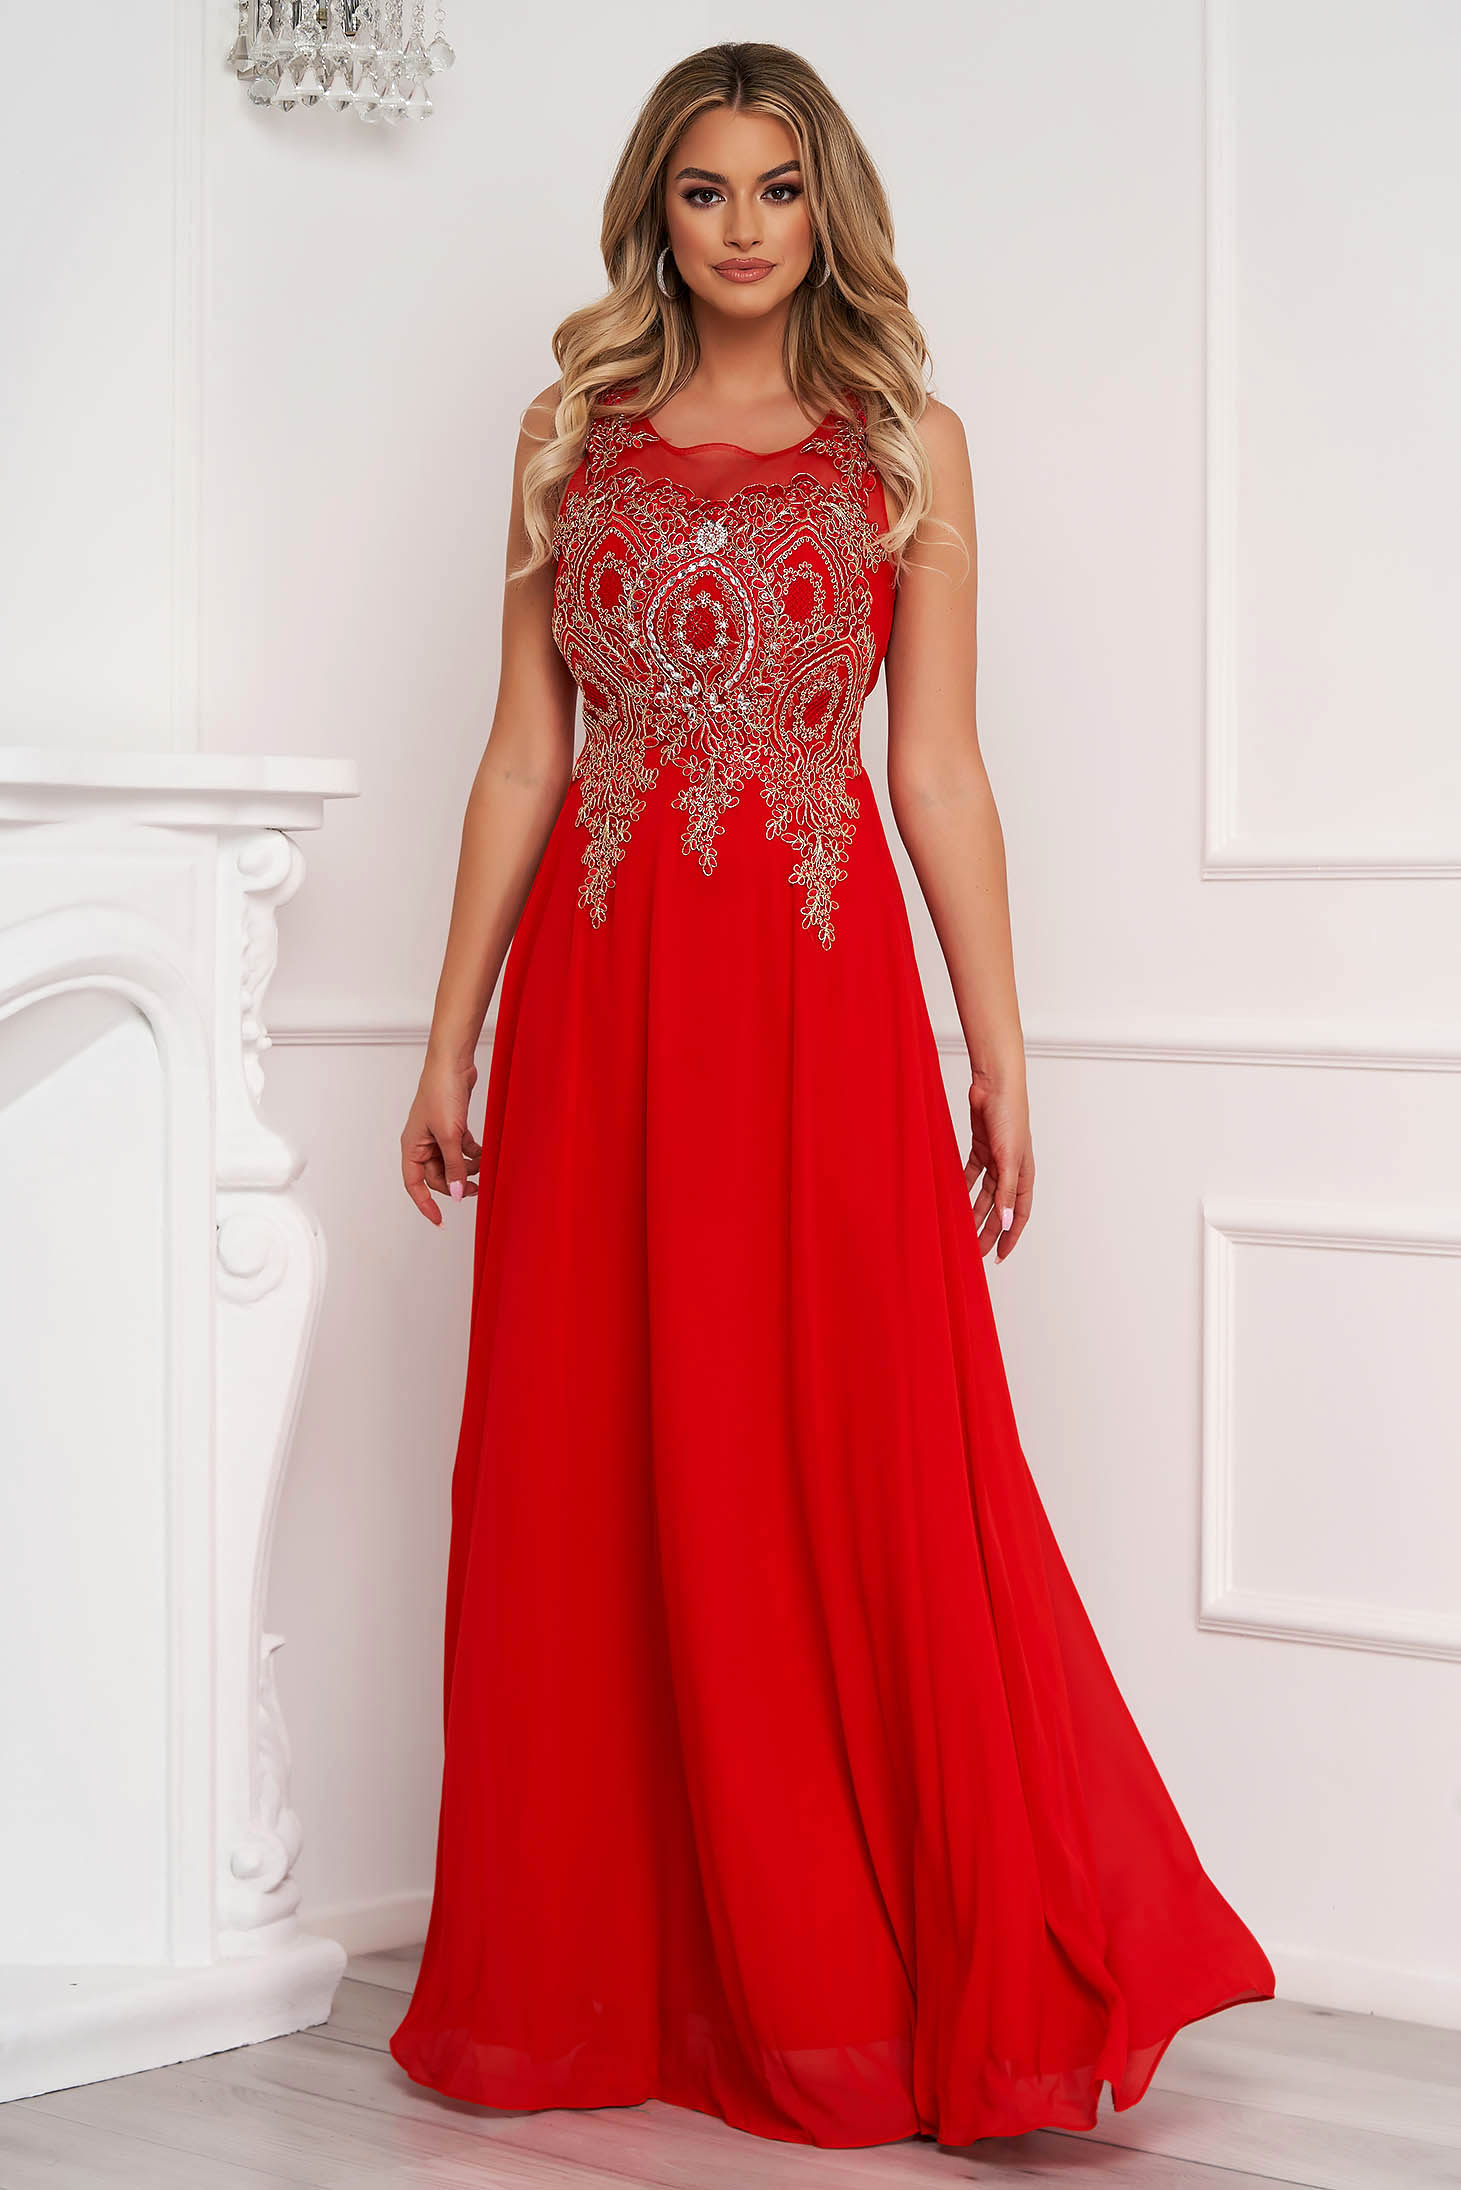 Red dress long occasional cloche from tulle front embroidery with crystal embellished details